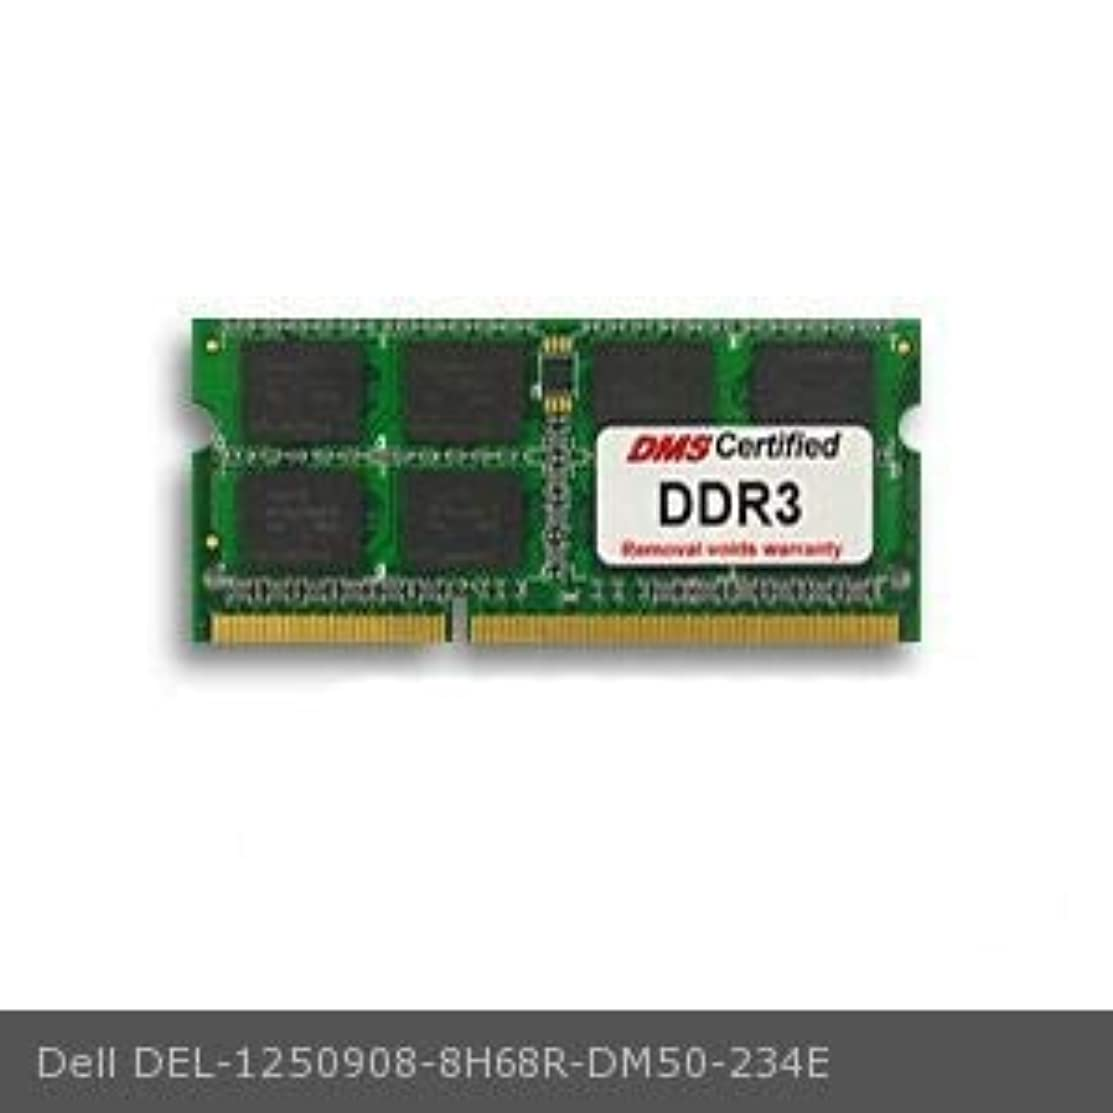 DMS Compatible/Replacement for Dell 8H68R Precision Mobile Workstation M6700 8GB eRAM Memory 204 Pin DDR3-1600 PC3-12800 1024x64 CL11 1.5V SODIMM - DMS